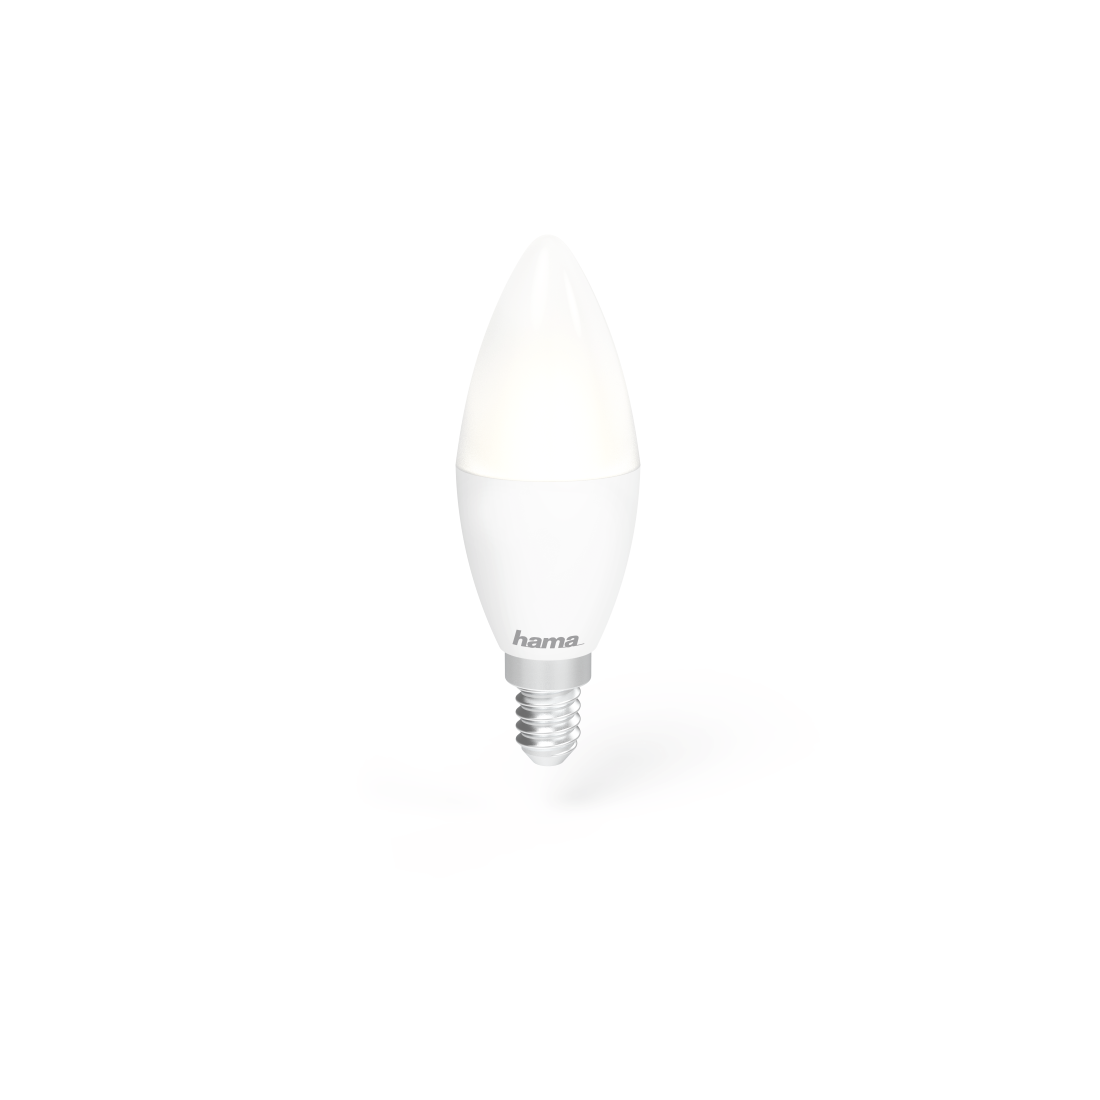 abx High-Res Image - Hama, Wifi-ledlamp, E14, 4,5W, wit, dimbaar